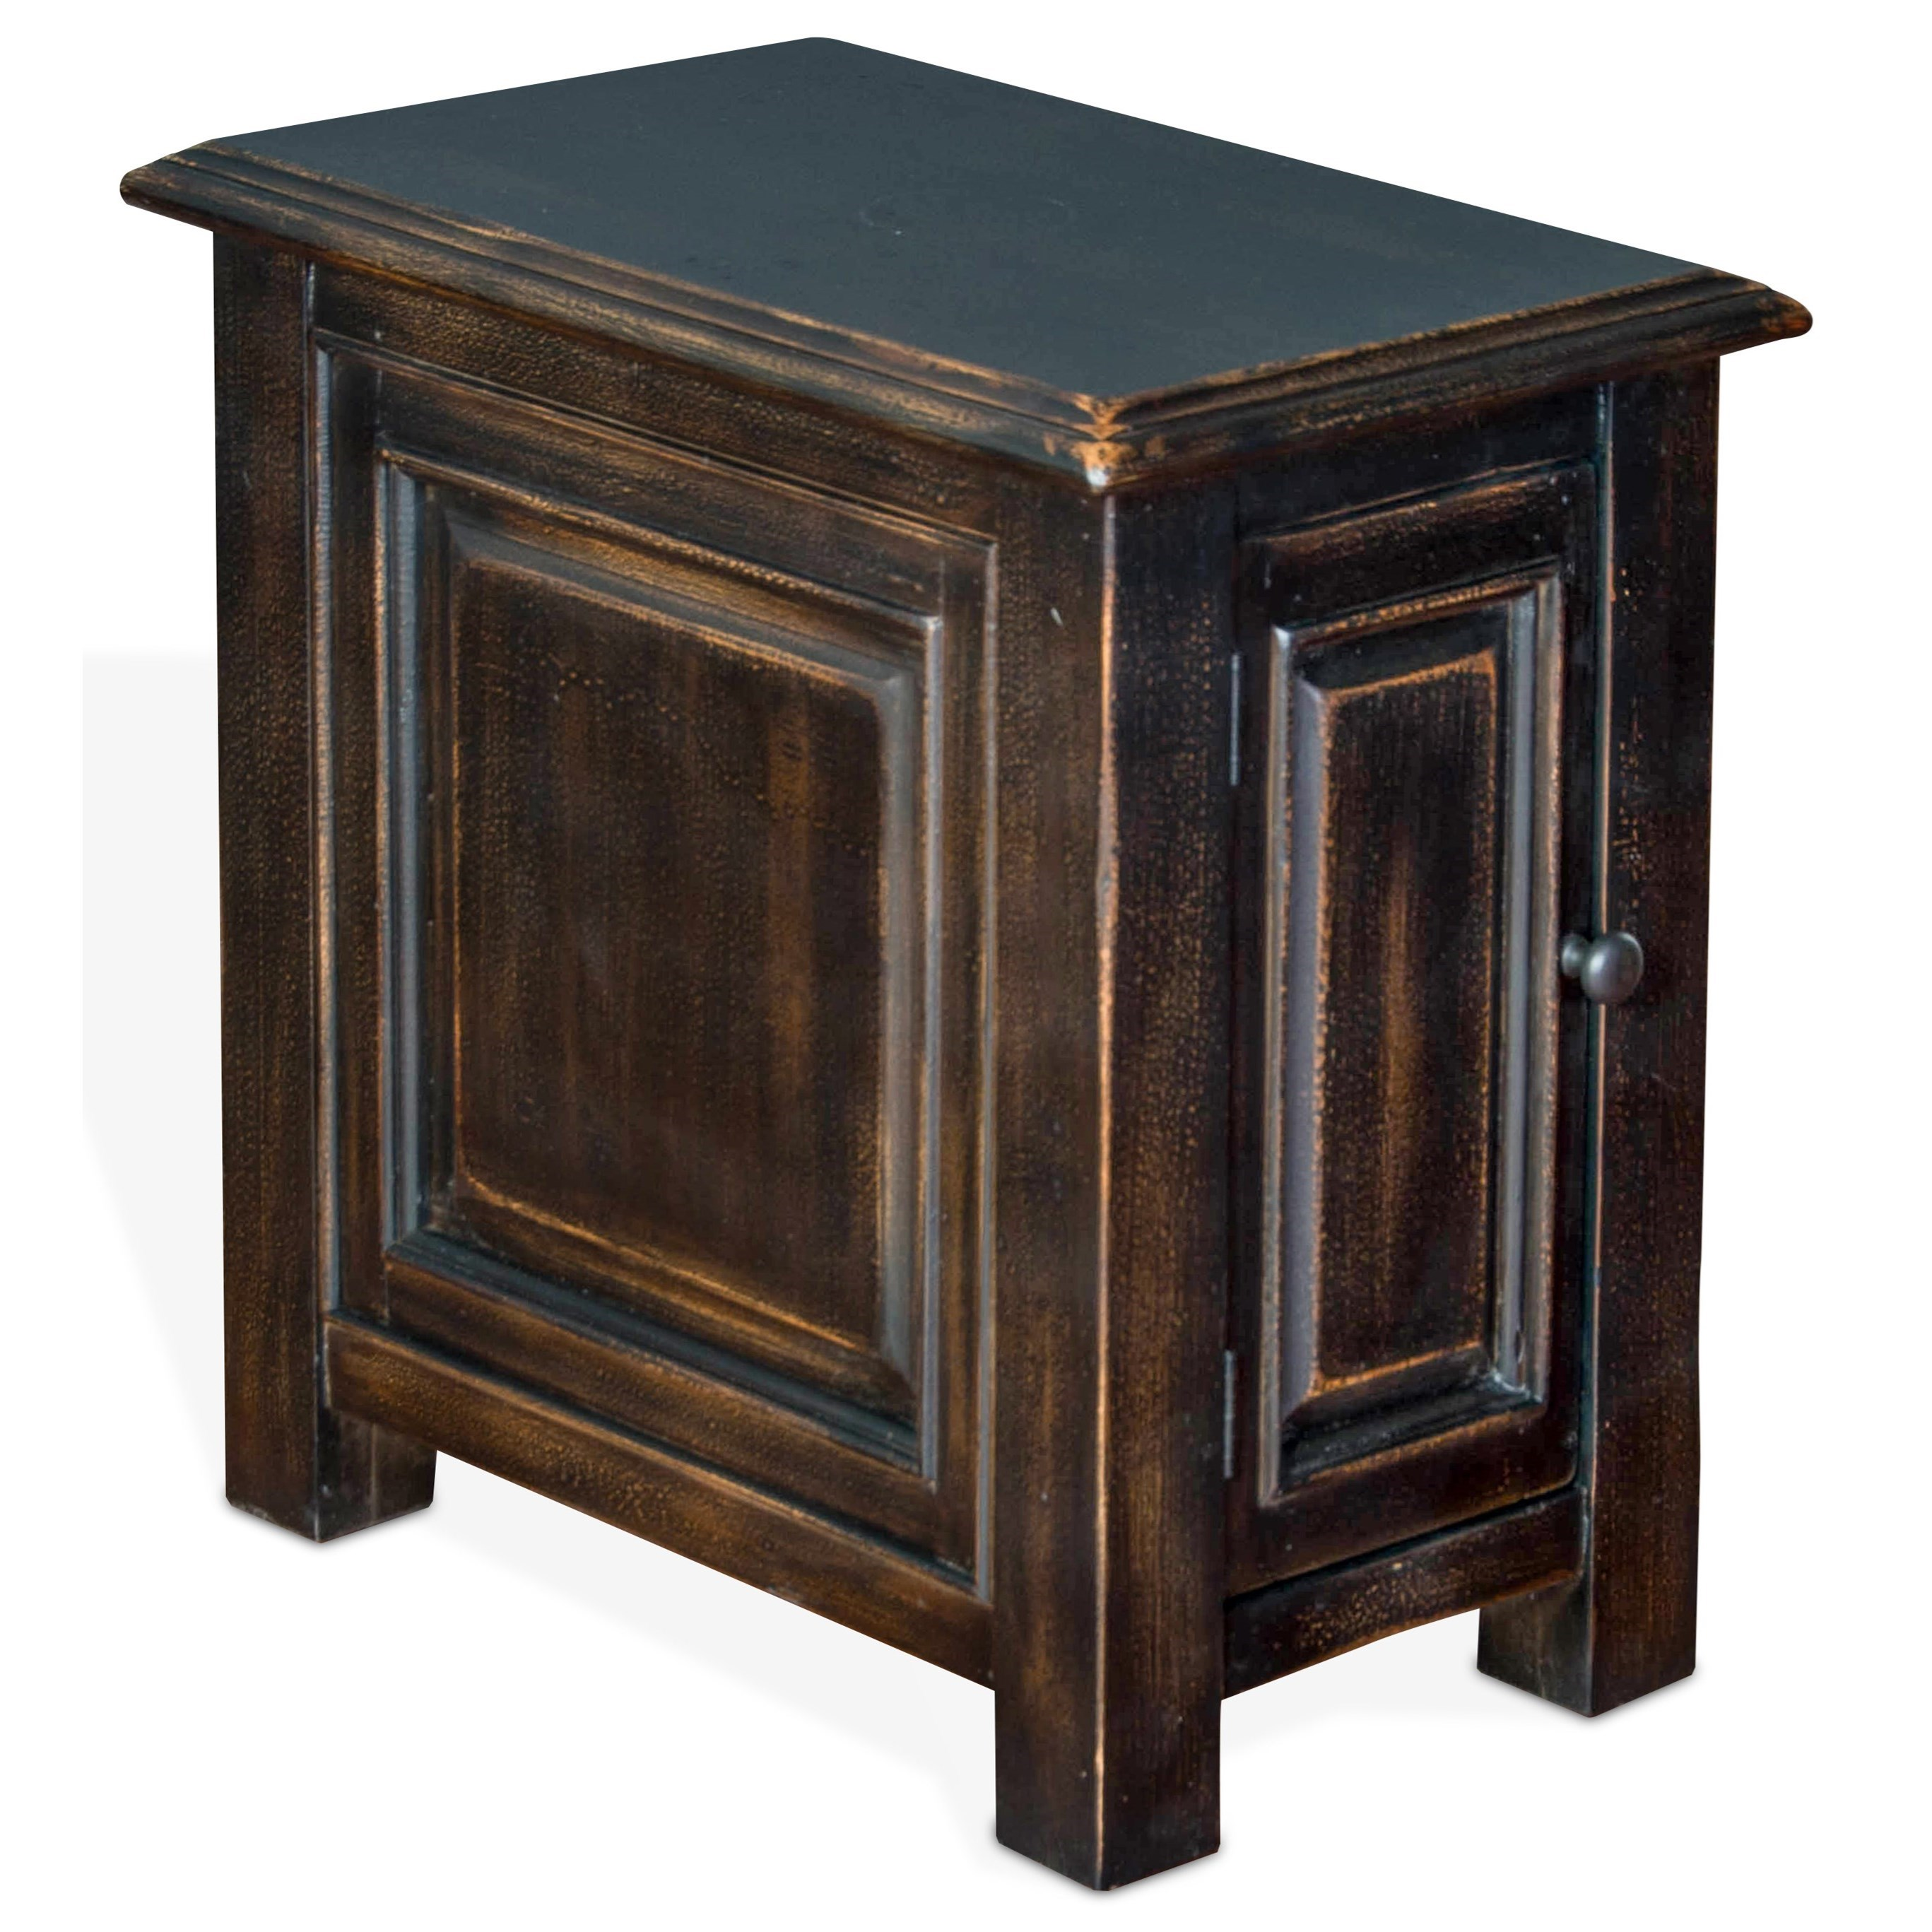 Sunny Designs Albany Chair Side Table with Door in